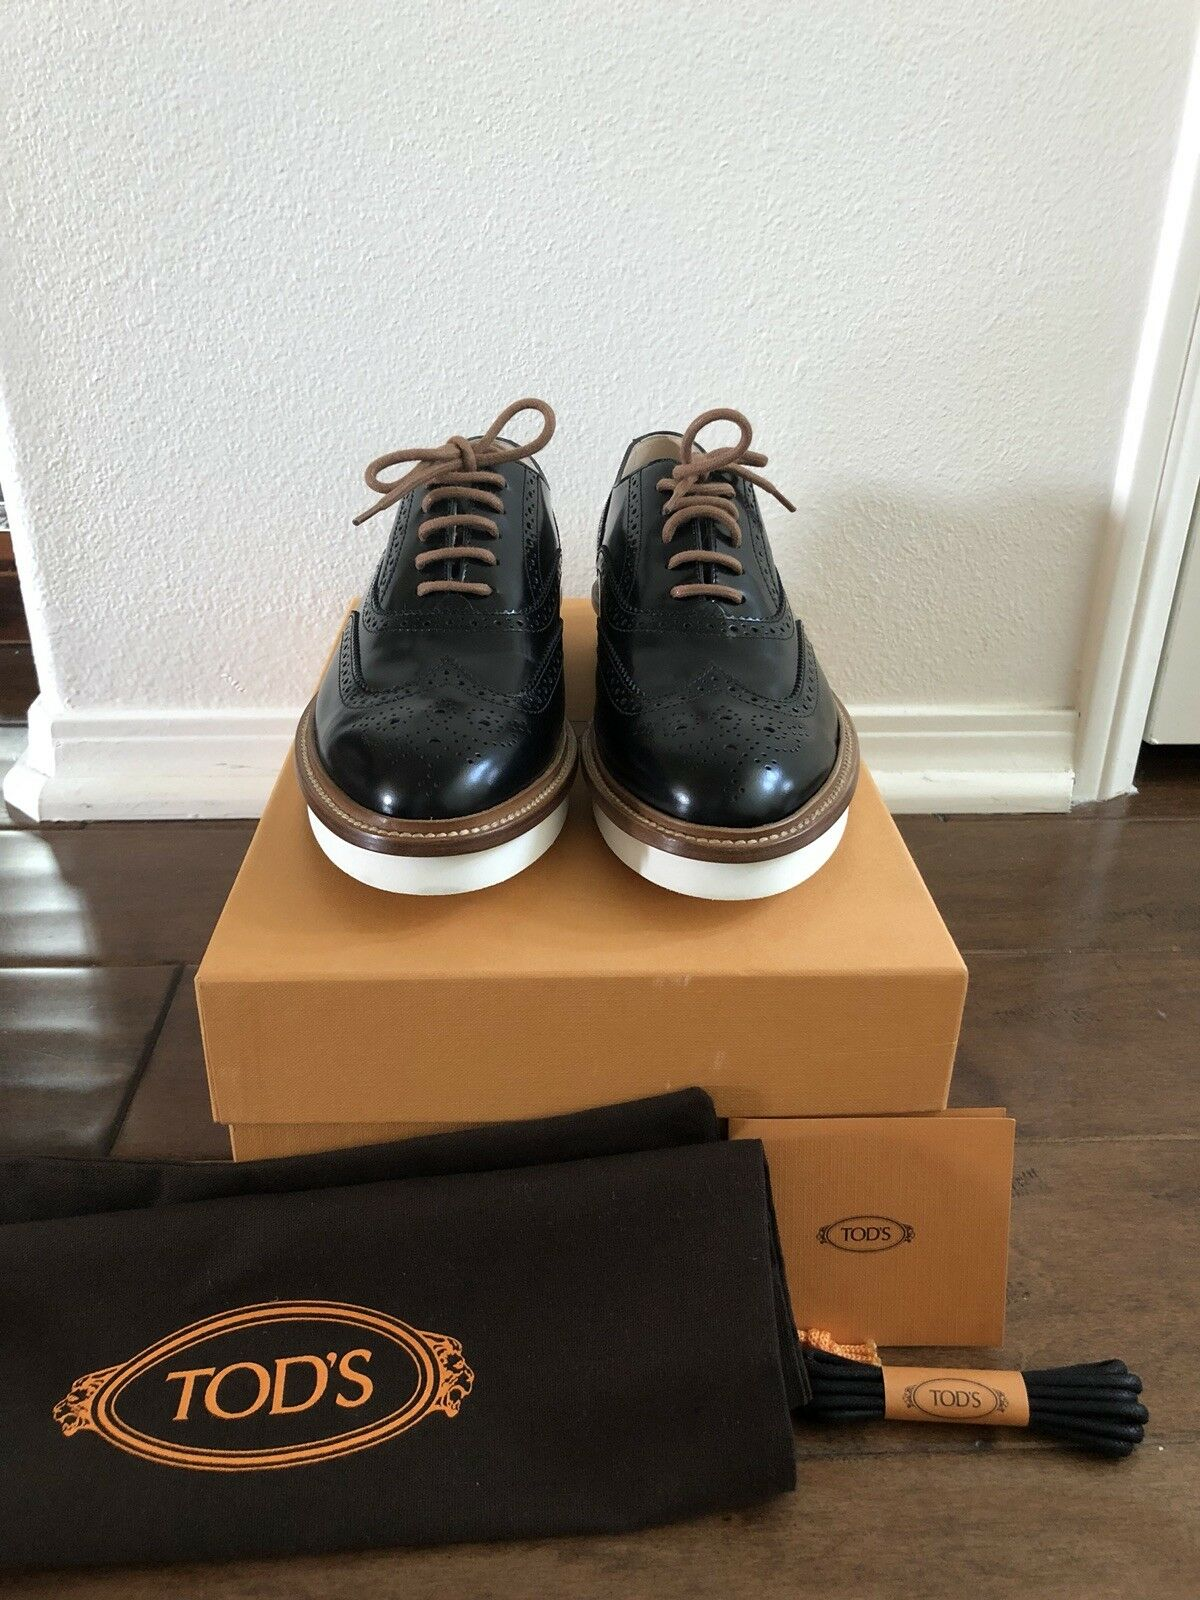 TOD'S Brand New and and and Never Worn - Gomma Lace-Up Brogues in noir (US Taille 8.5) aa79d1